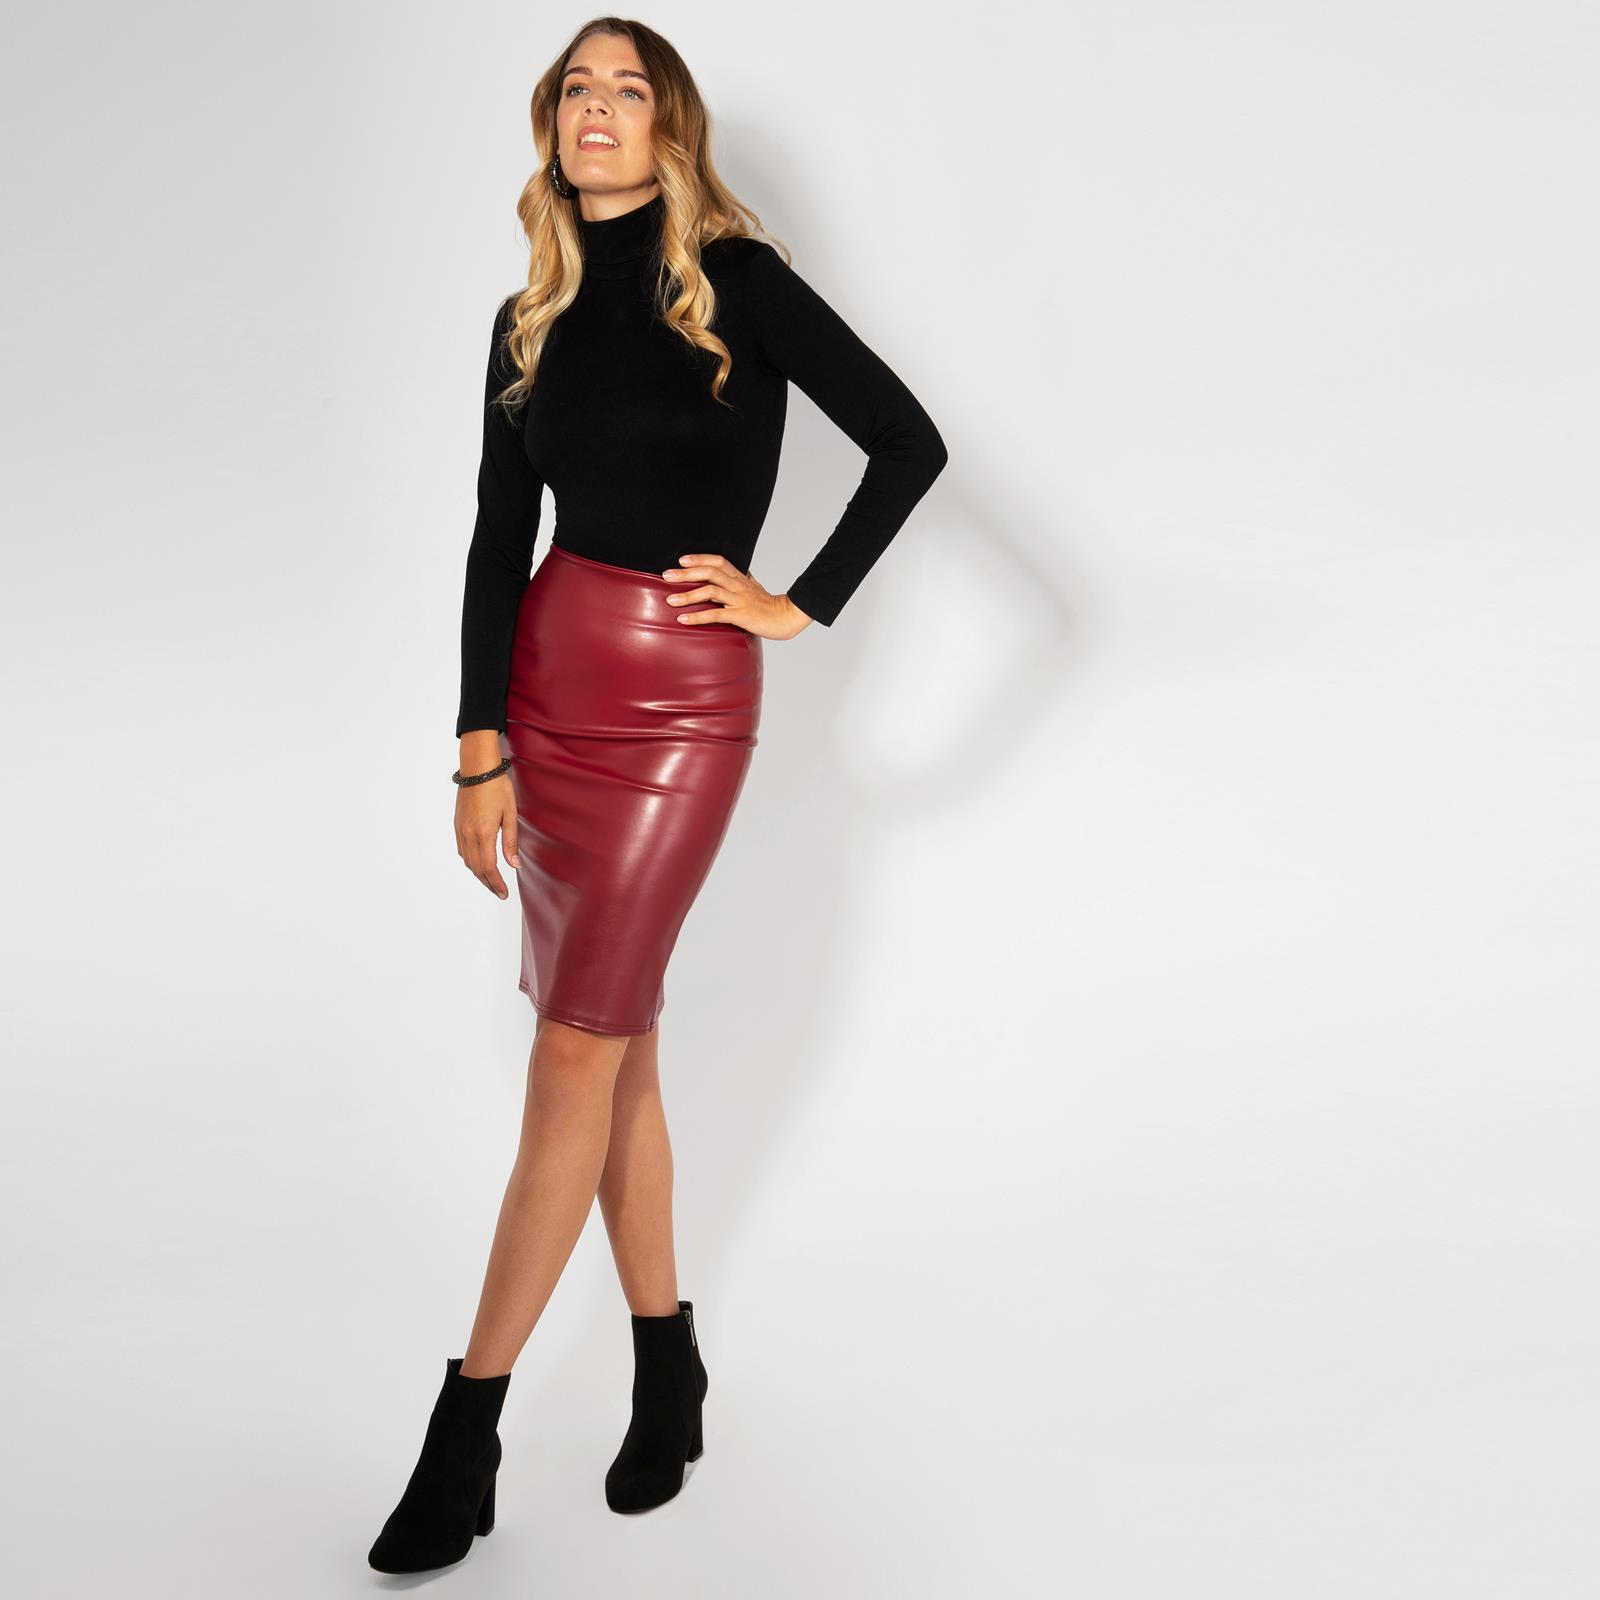 Womens-Ladies-Leather-Pencil-Skirt-Sexy-Wet-Look-Stretch-PU-Mini-Midi-Bodycon thumbnail 12